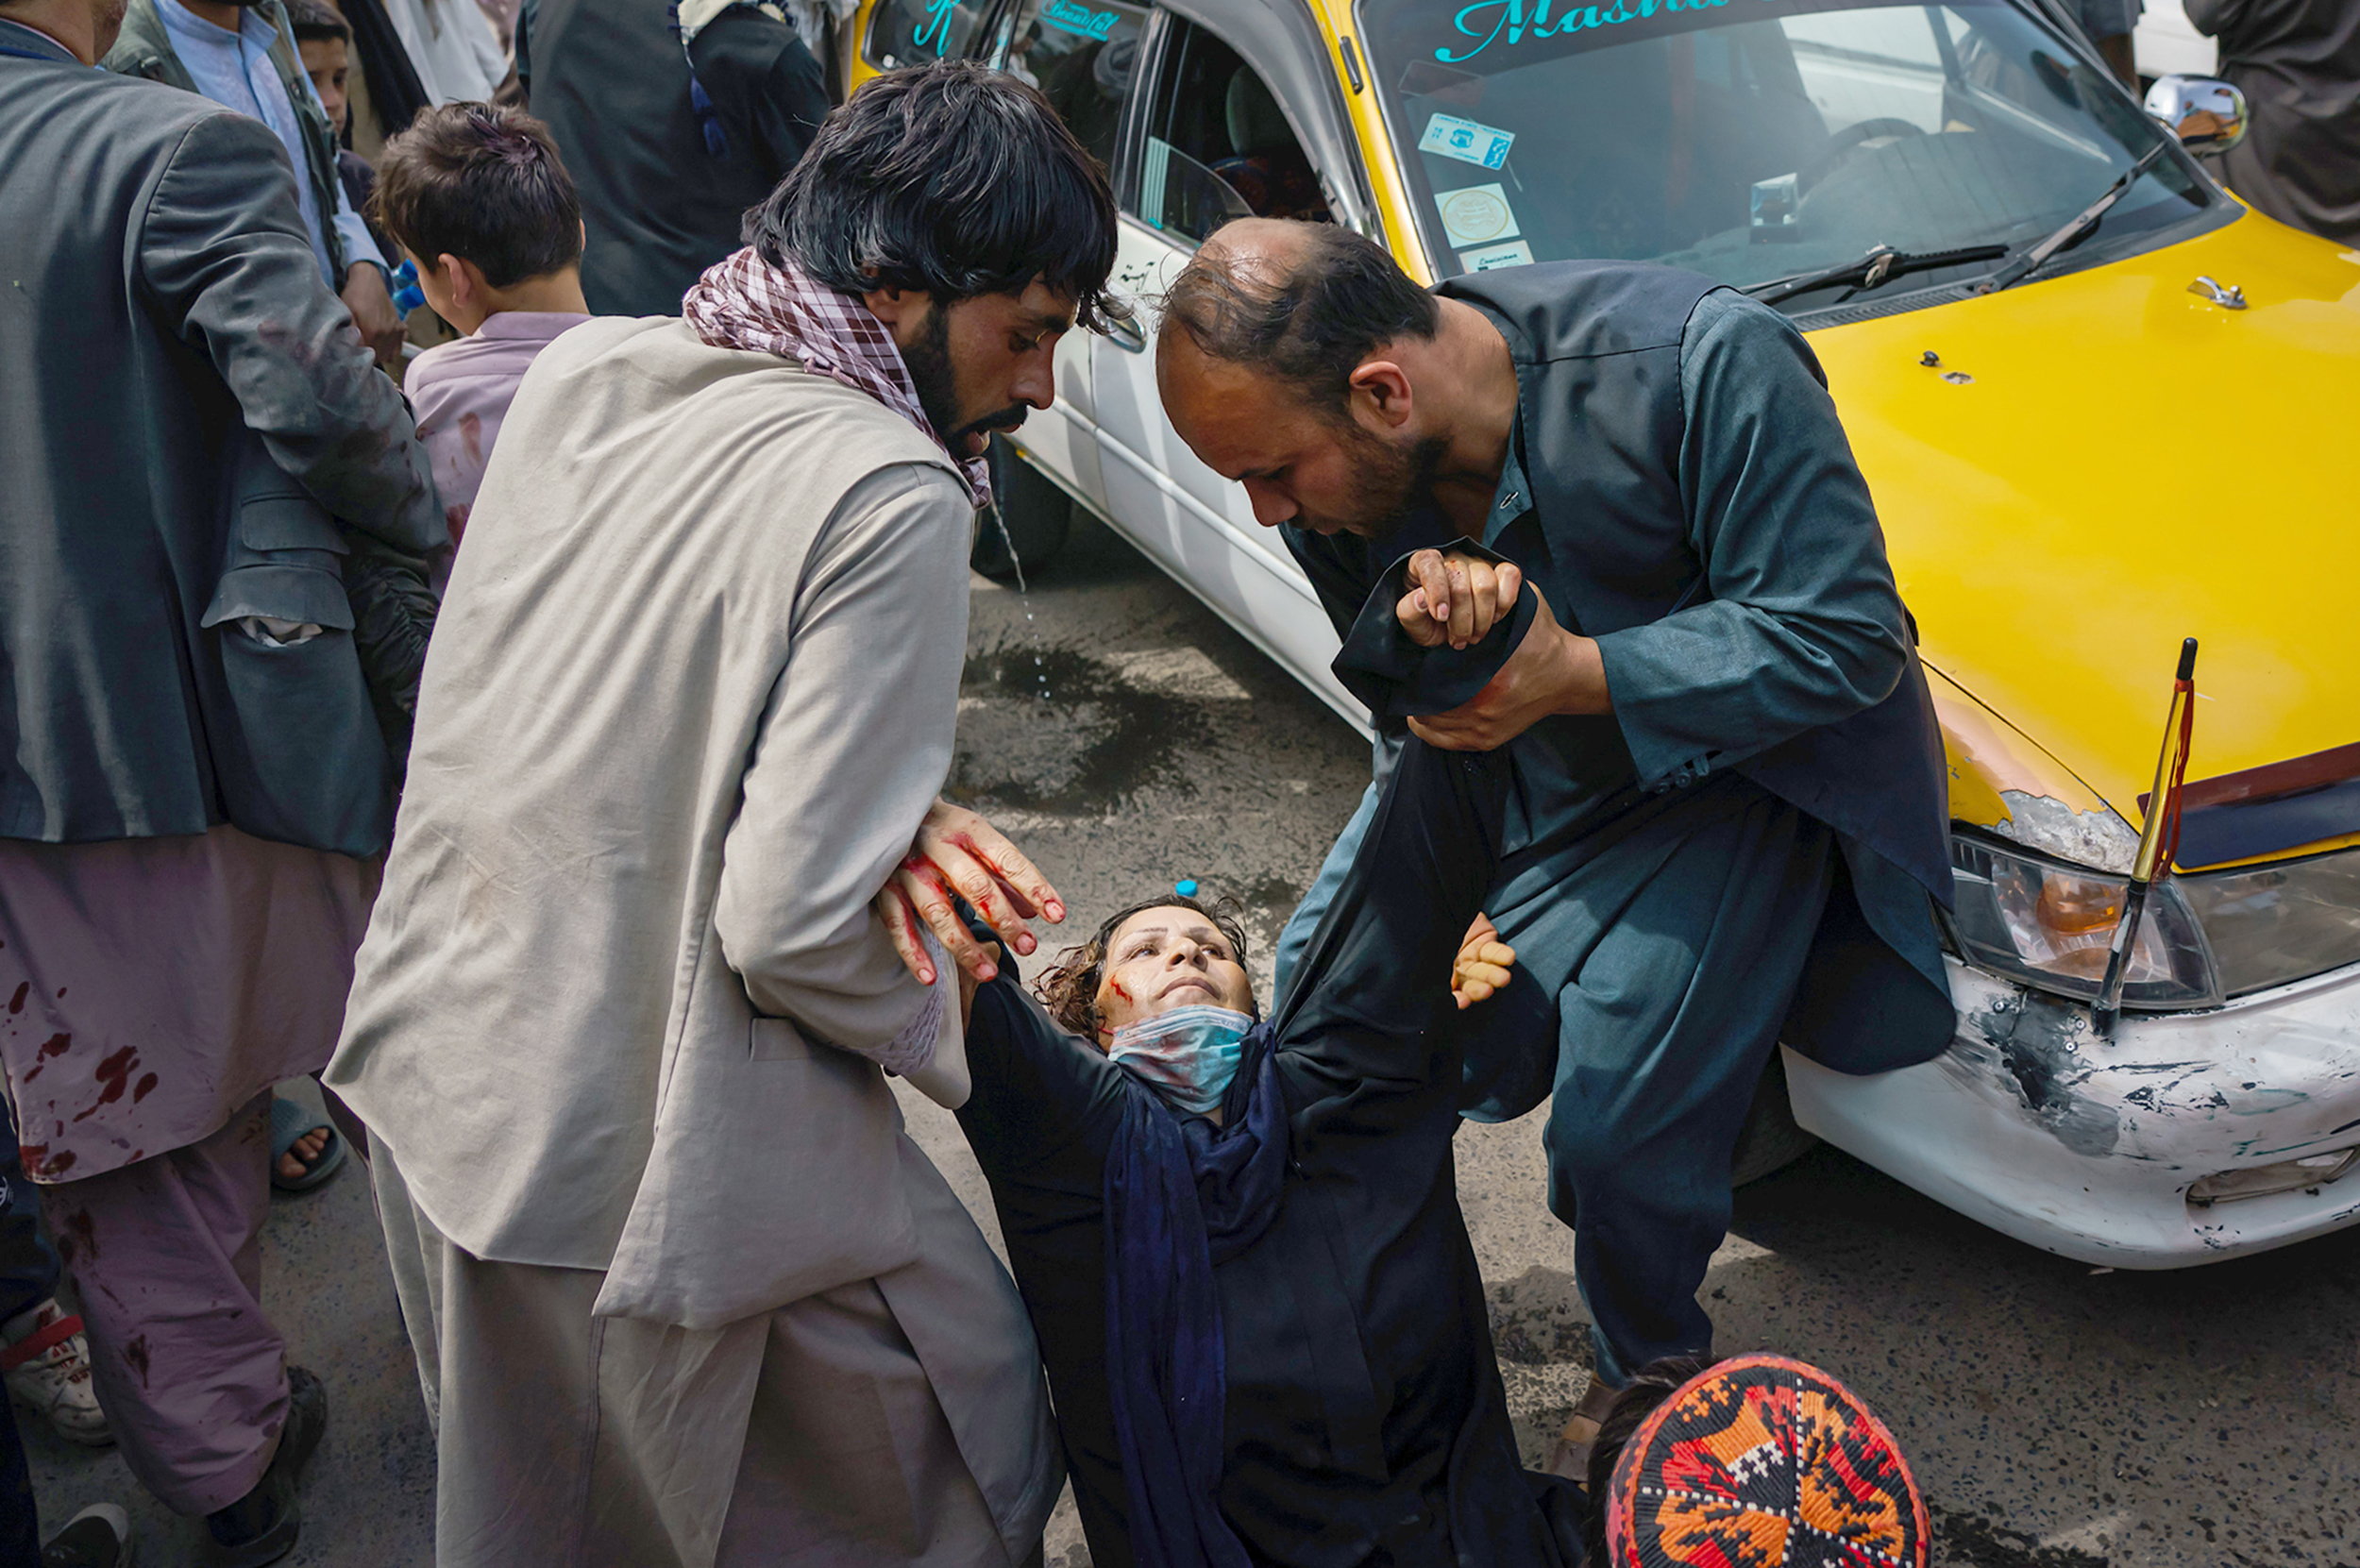 Taliban crack down on protest, leave women and children bloodied in efforts to consolidate rule